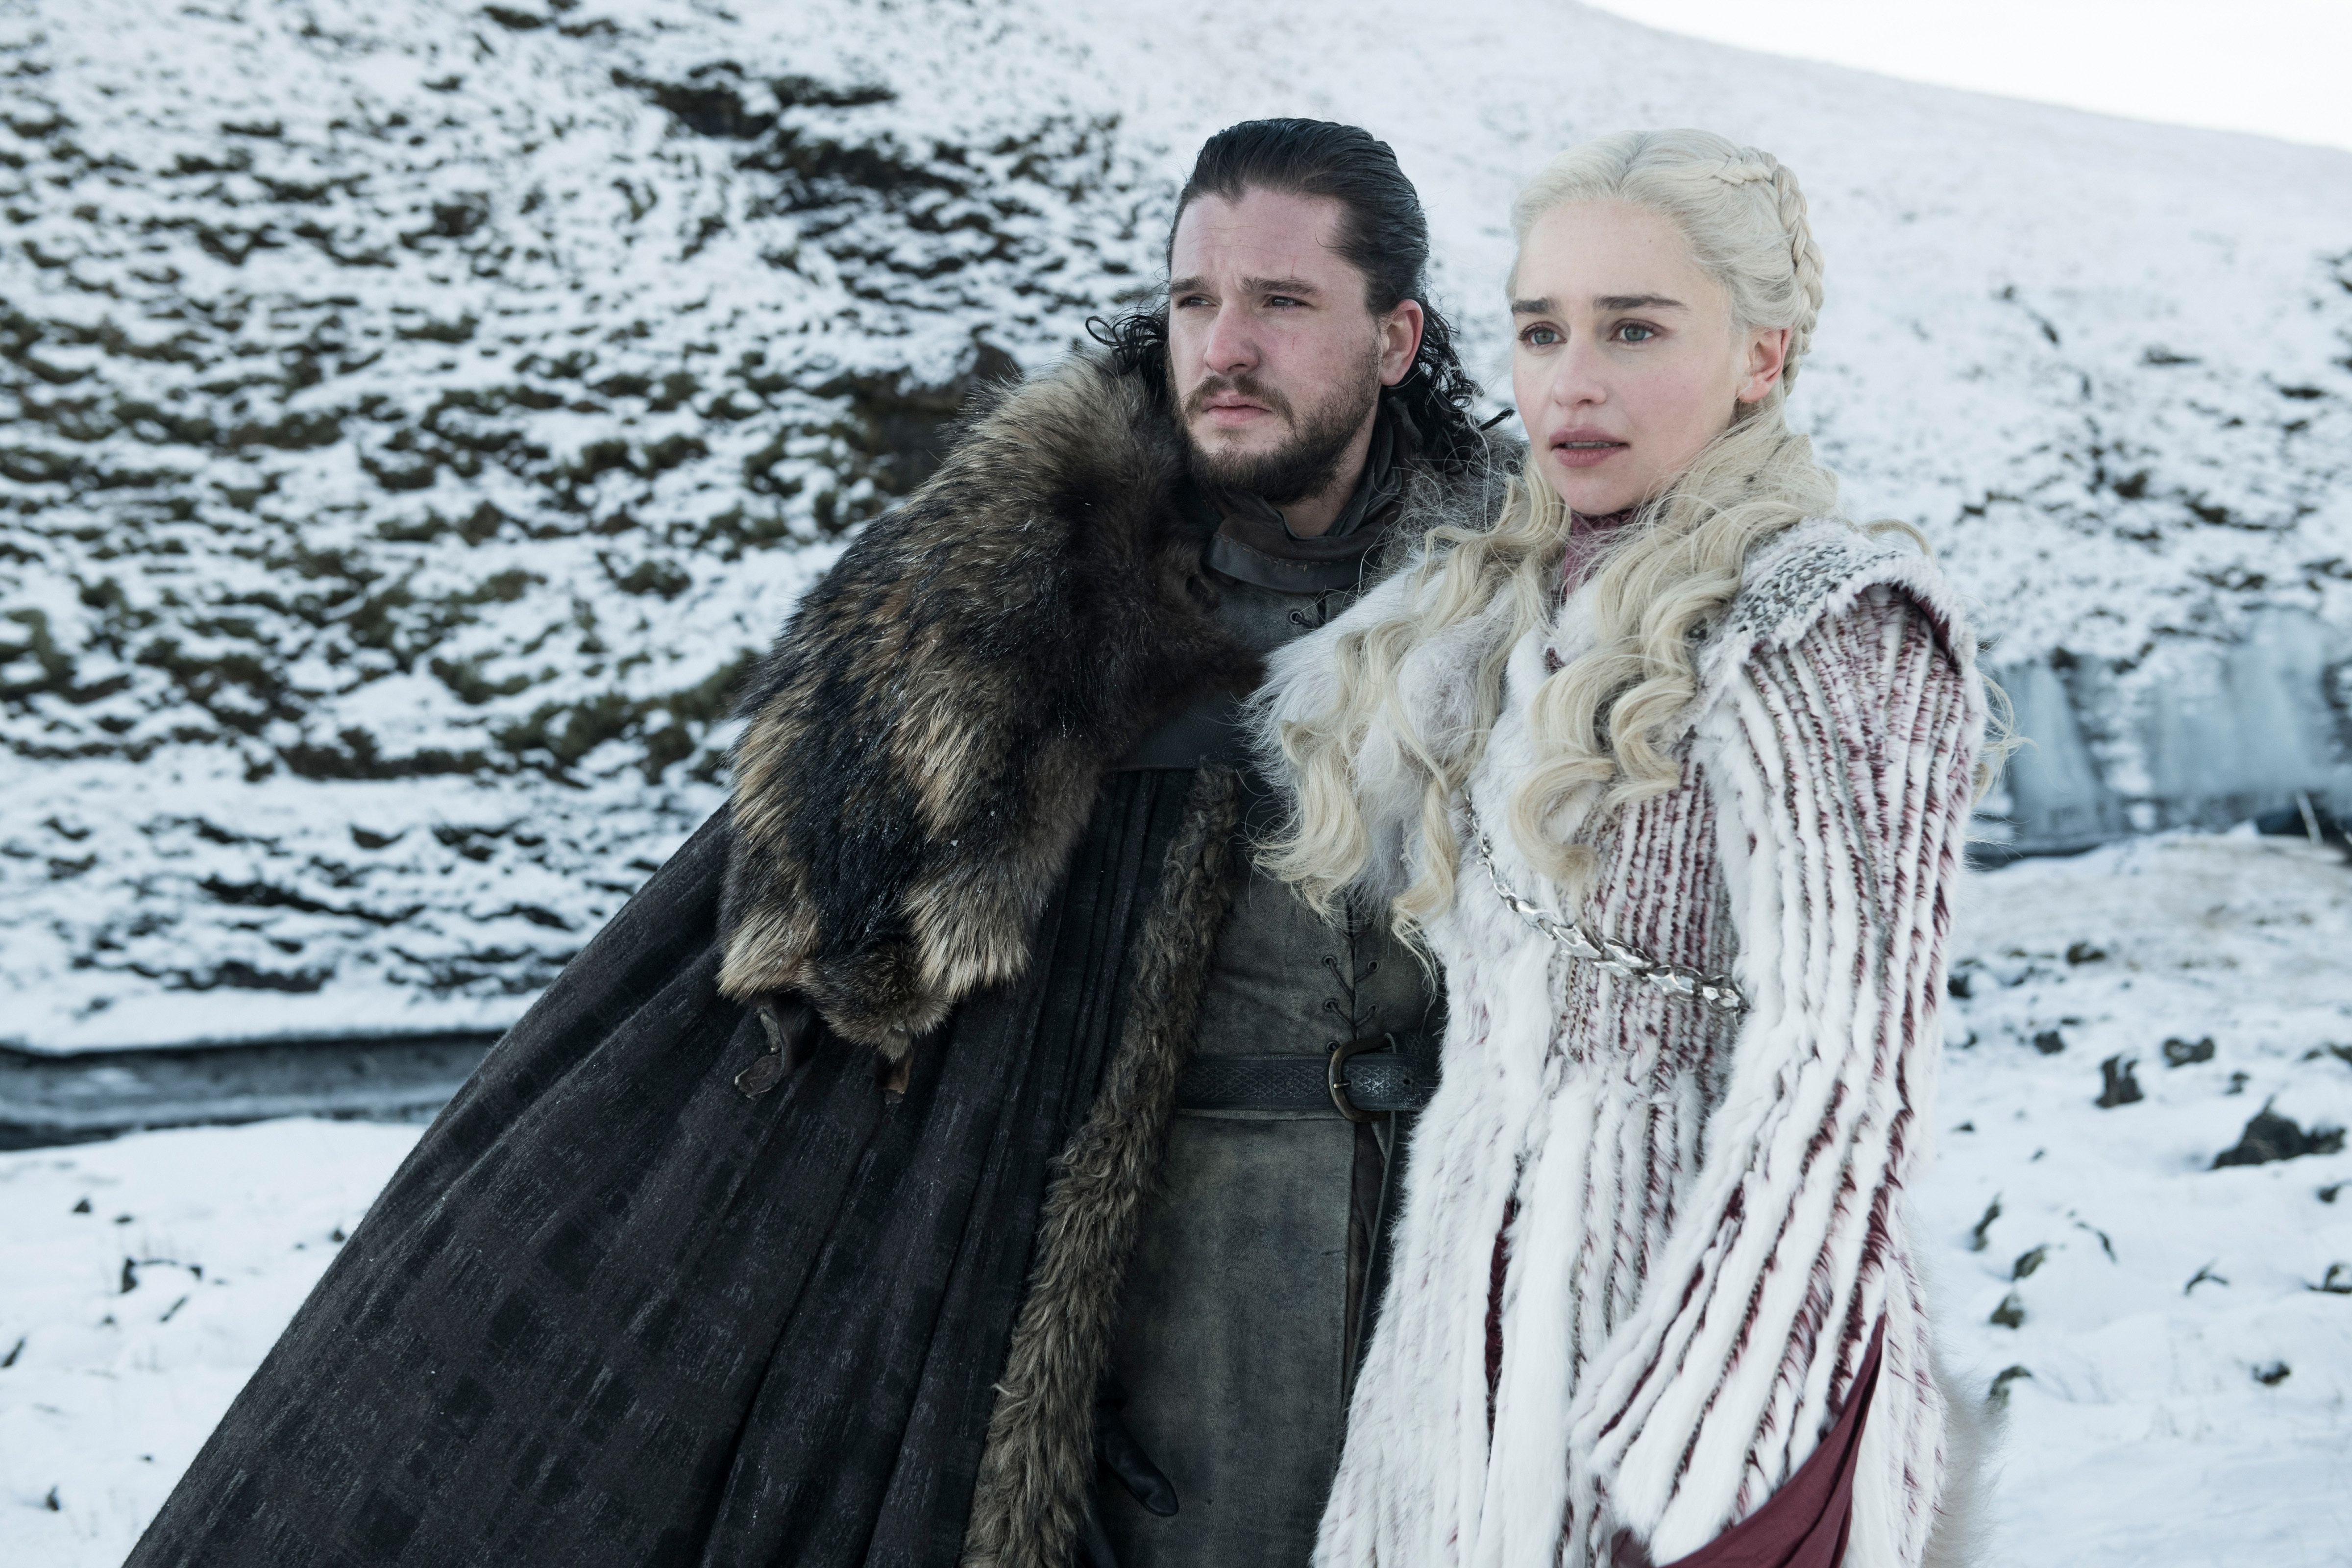 Dany pictured with her